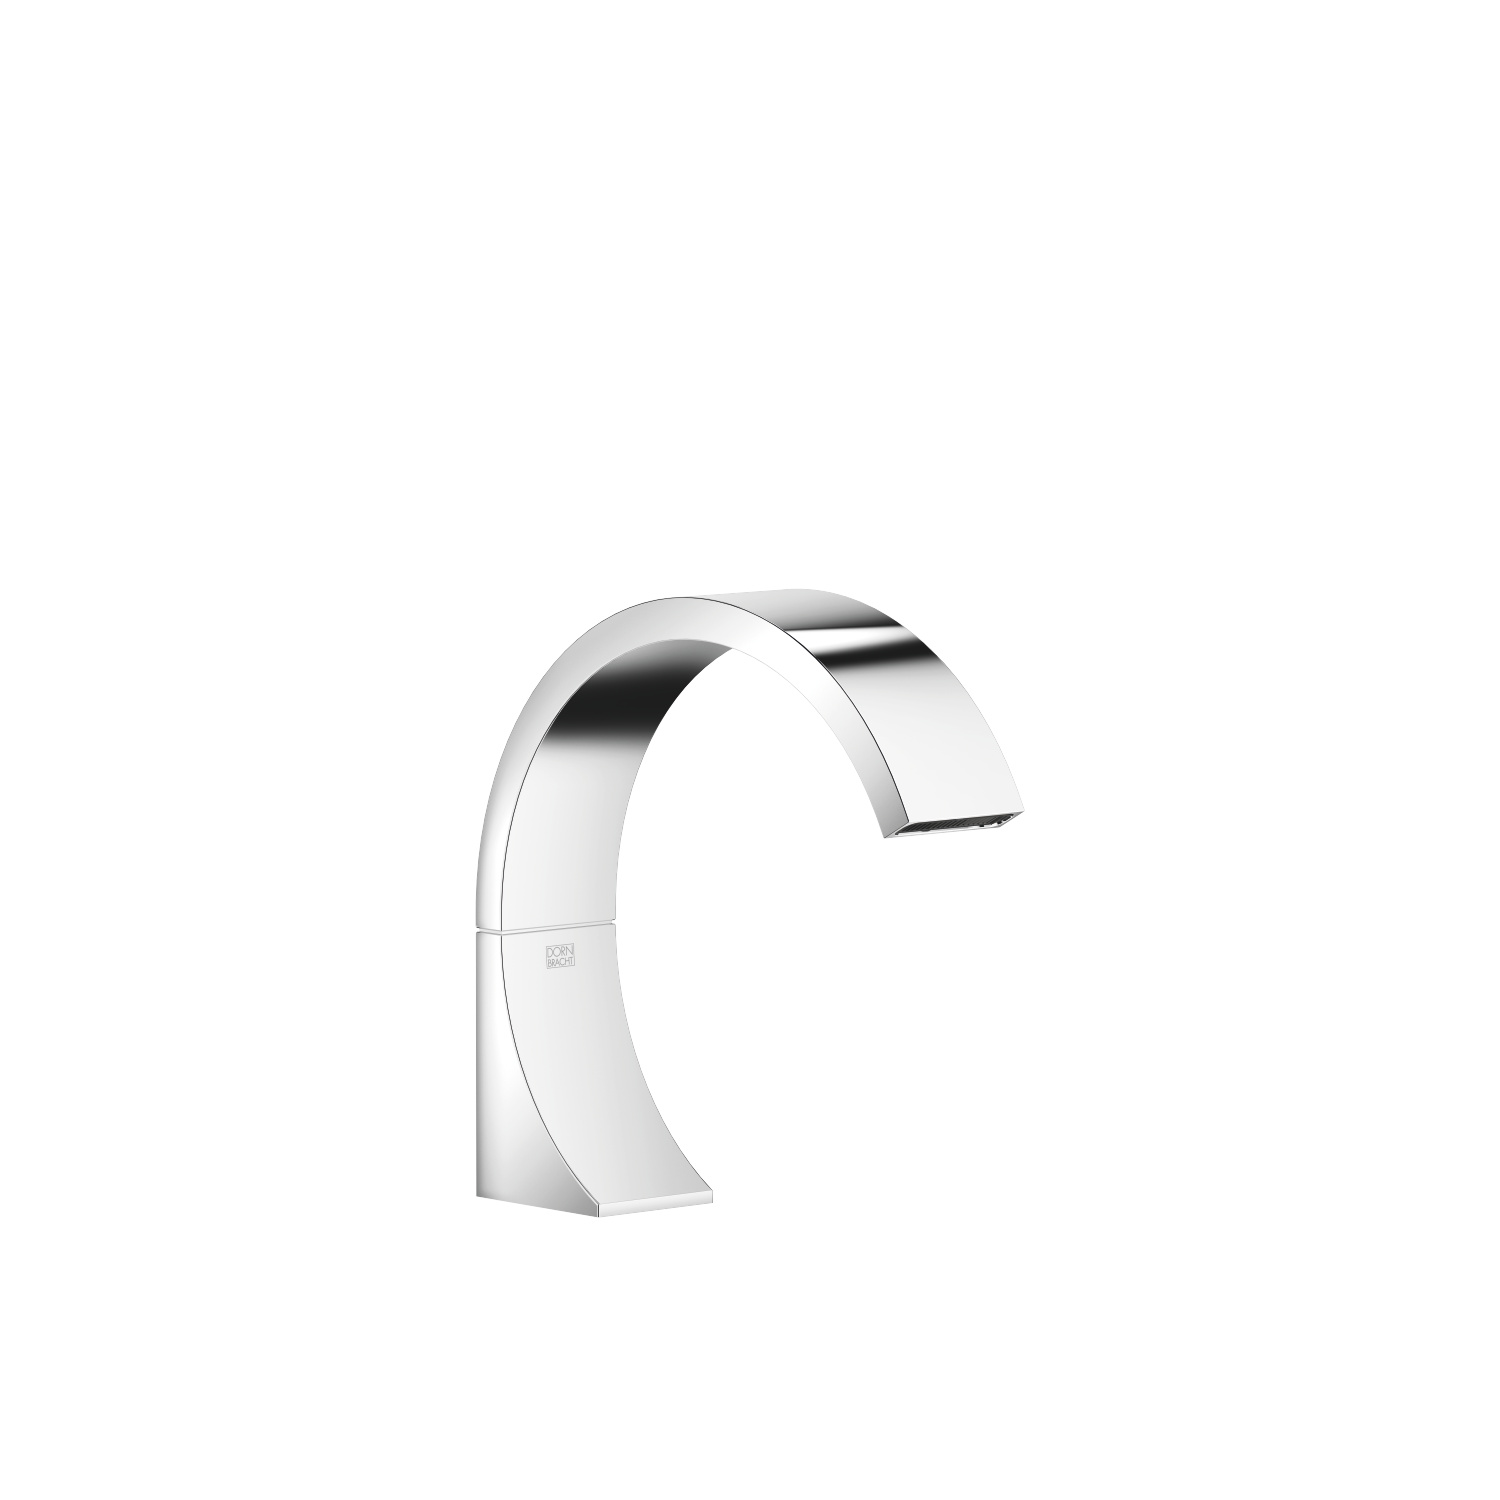 eSET Touchfree Basin mixer without pop-up waste with temperature setting - polished chrome